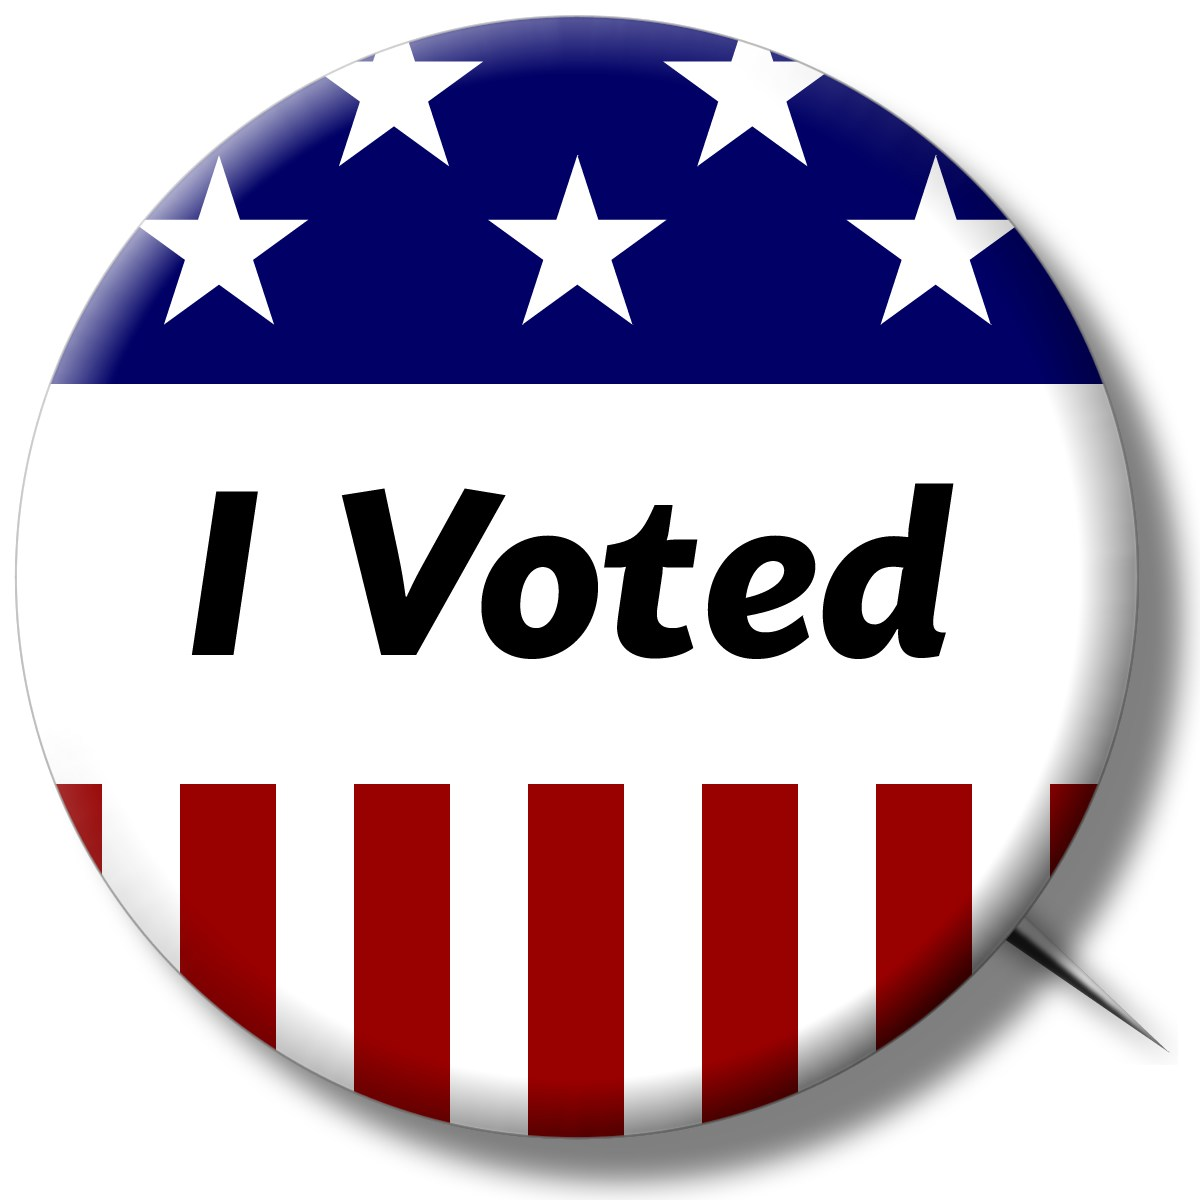 Images free download best. Voting clipart secretary state